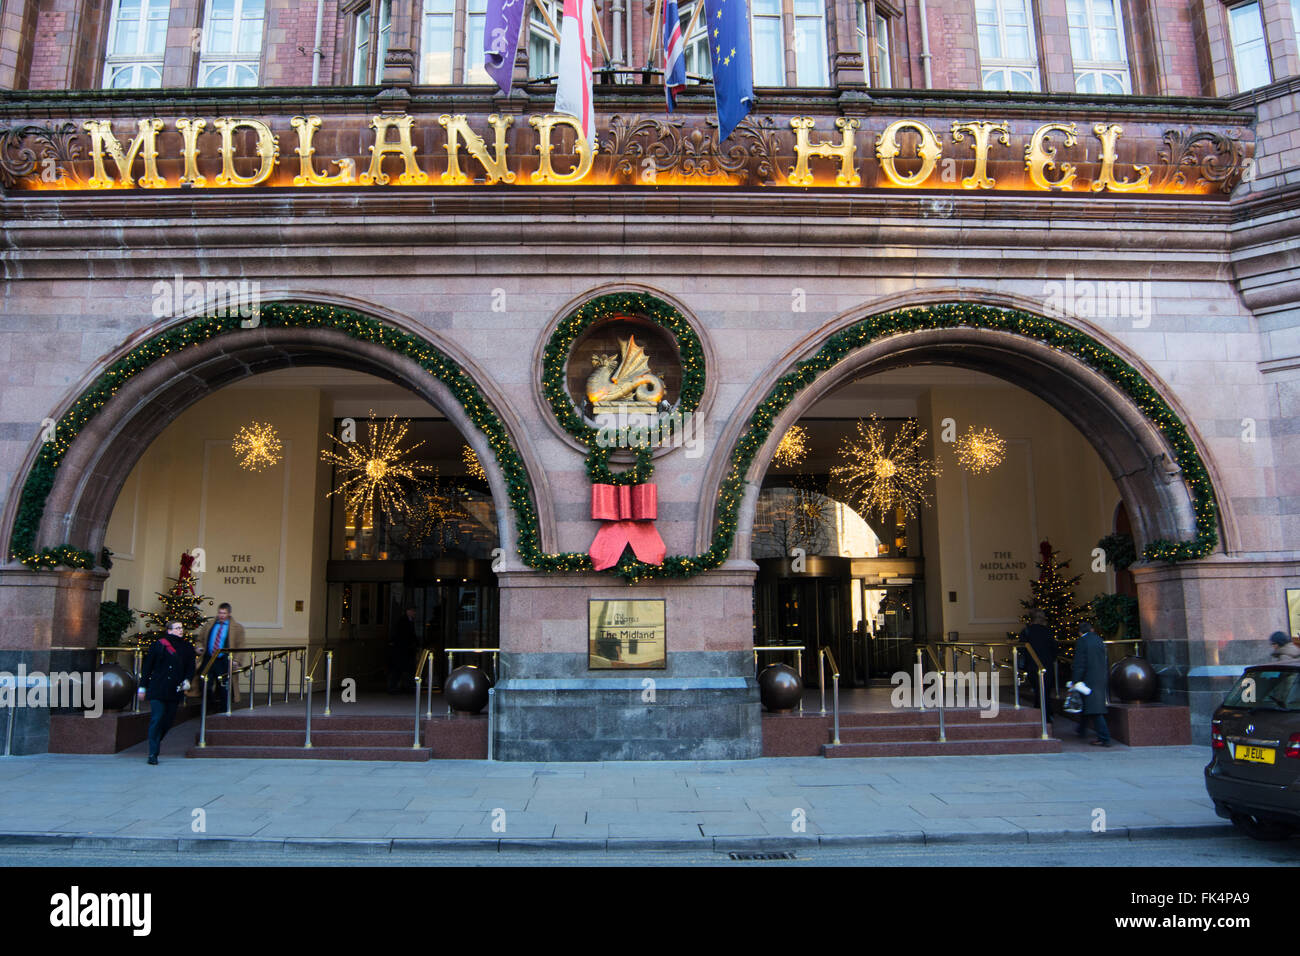 The Midland Hotel in central Manchester, an Edwardian Baroque style Grade 2 listed building. - Stock Image